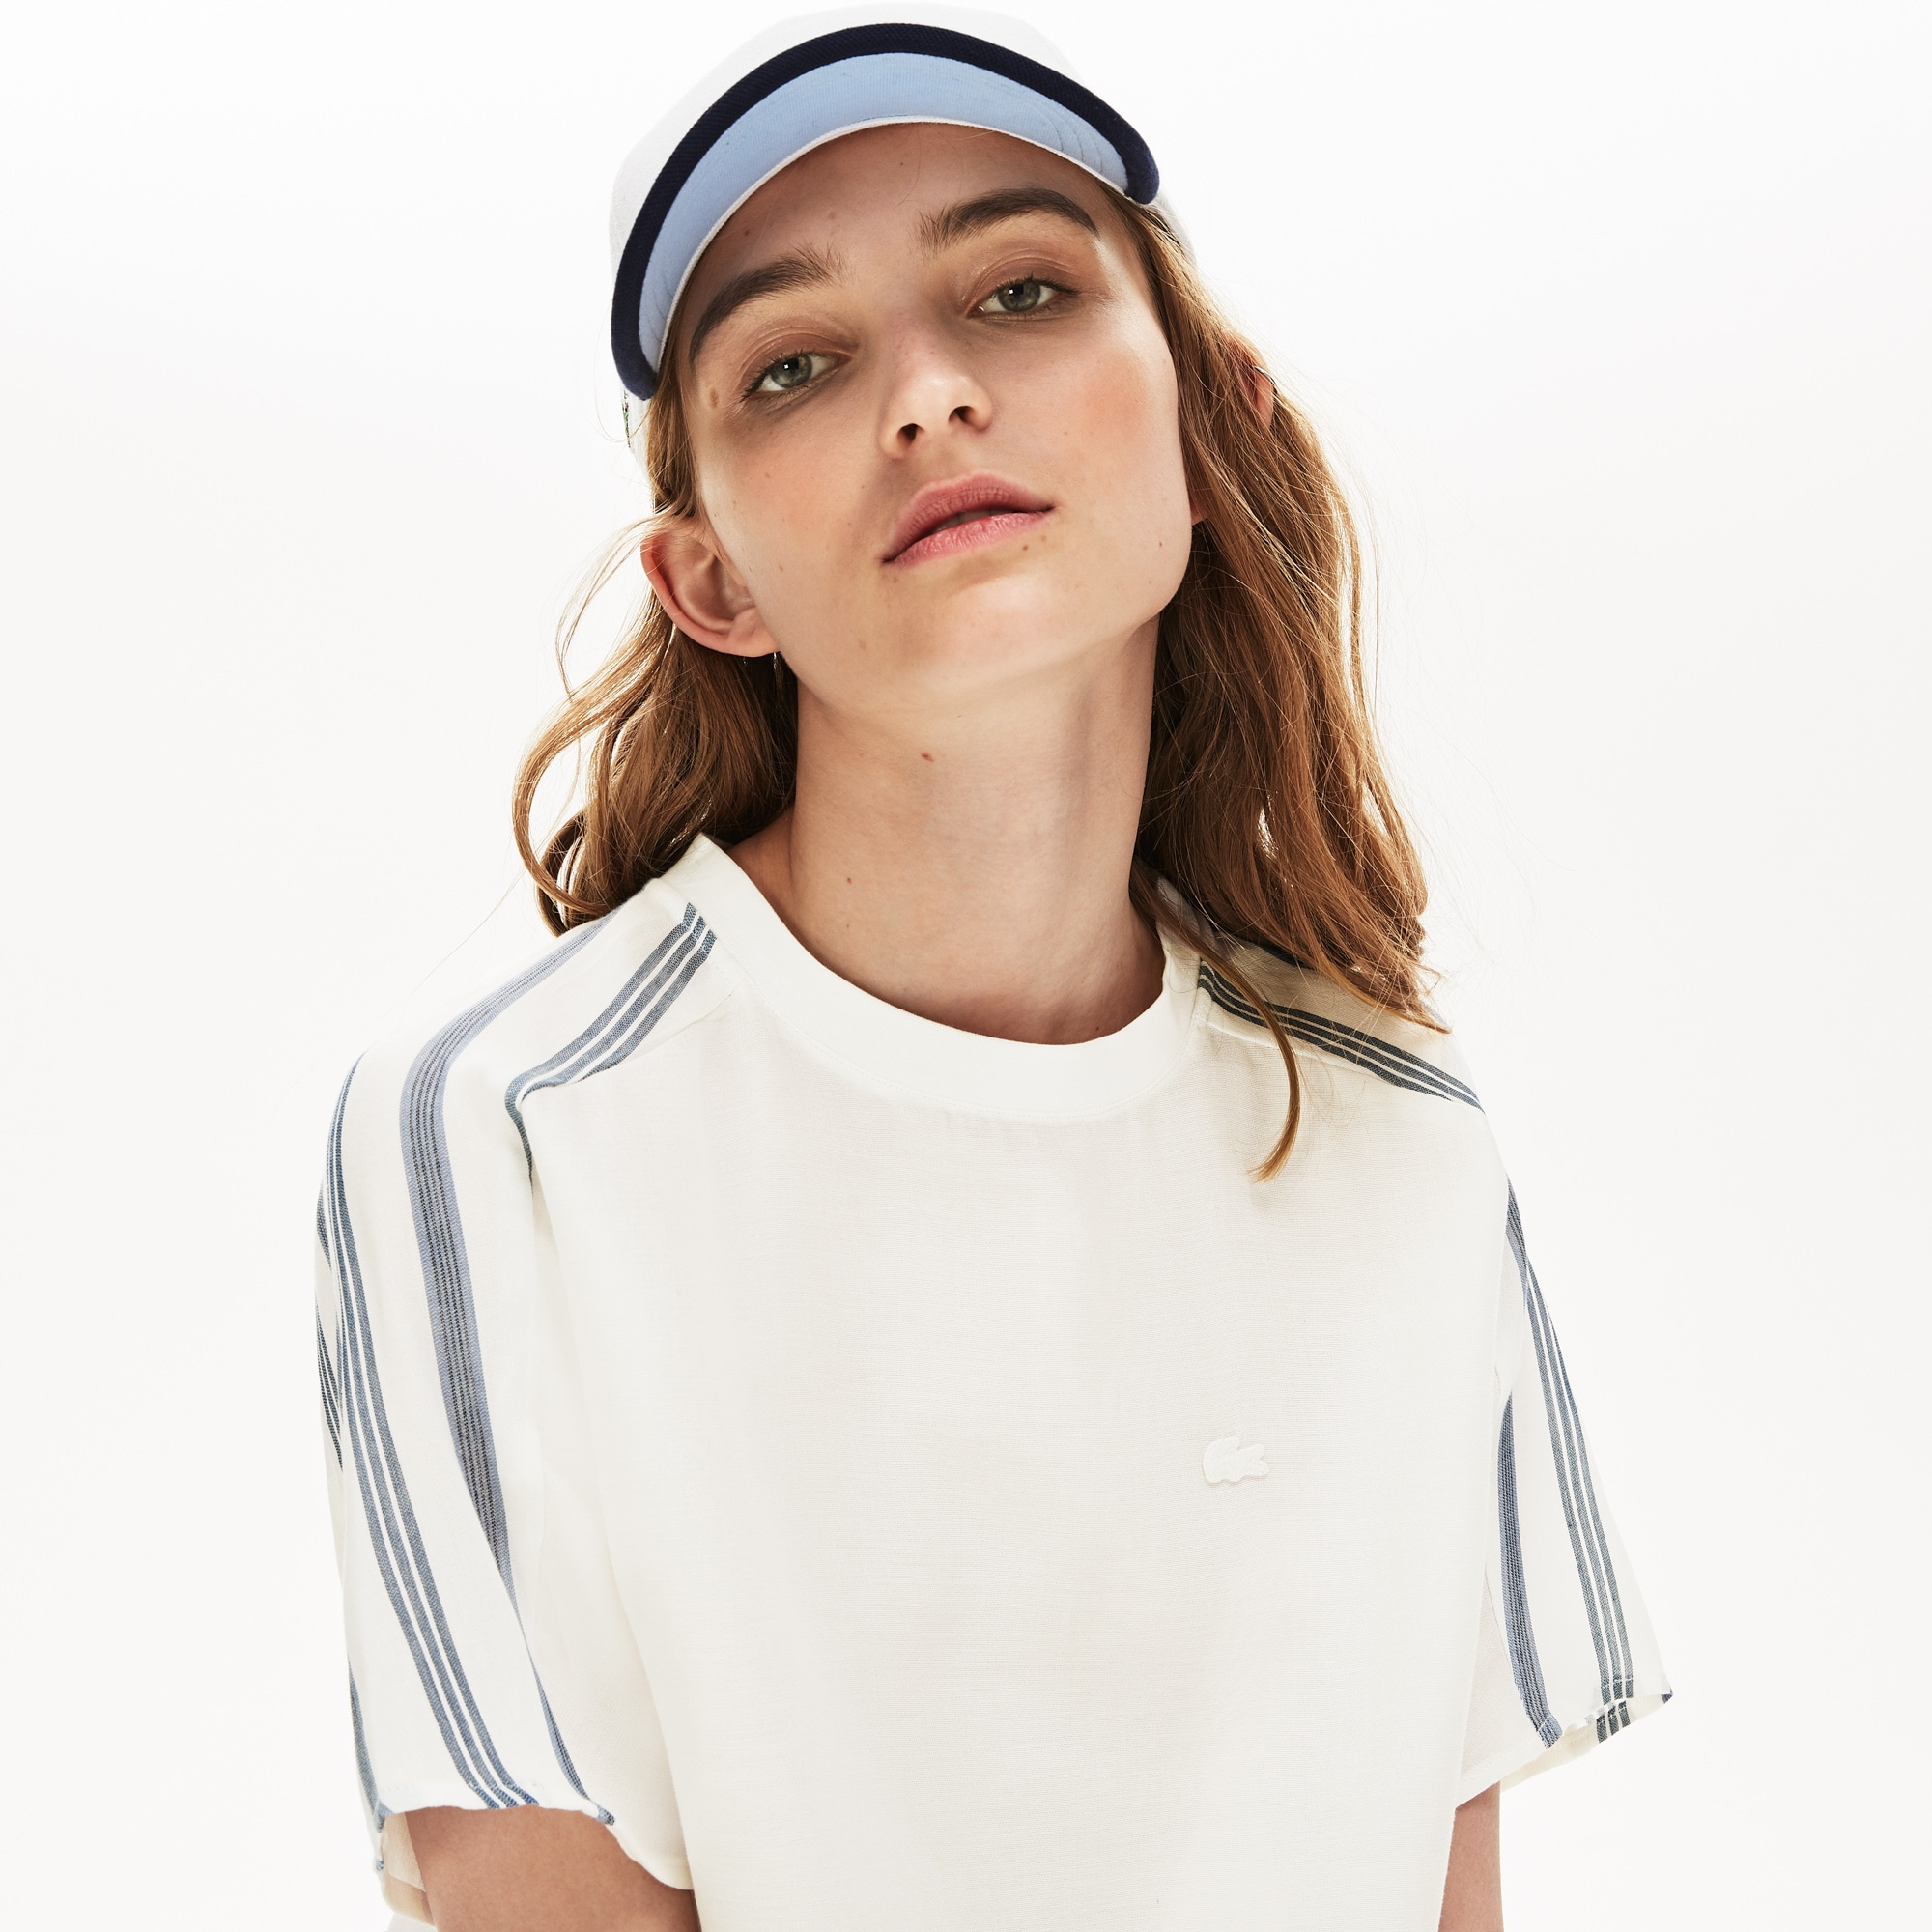 Lacoste Tops Women's Striped Panel Lightweight Canvas T-shirt